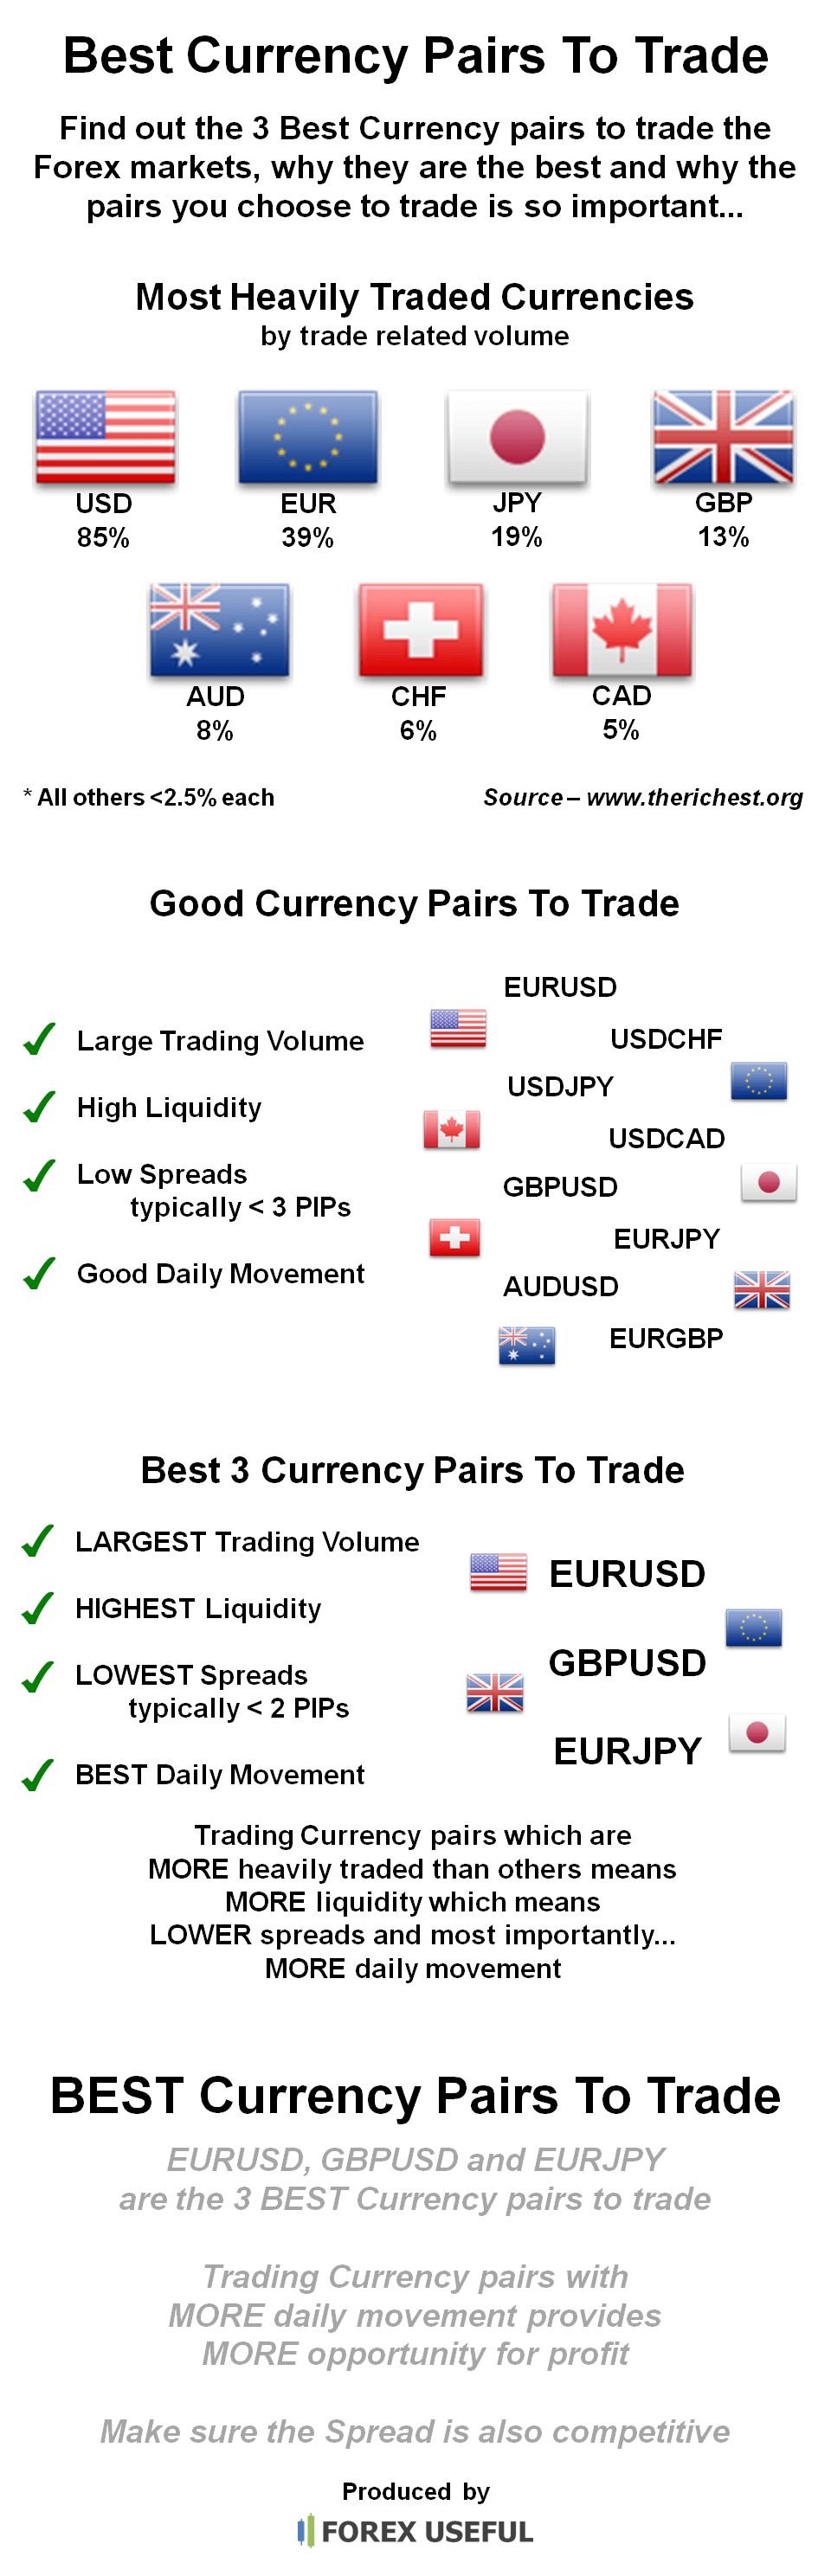 Div Style Clear Both A Href Http Forexuseful New Members 21812 Forex Guide Terminology Best Currency Pairs To Trade Img